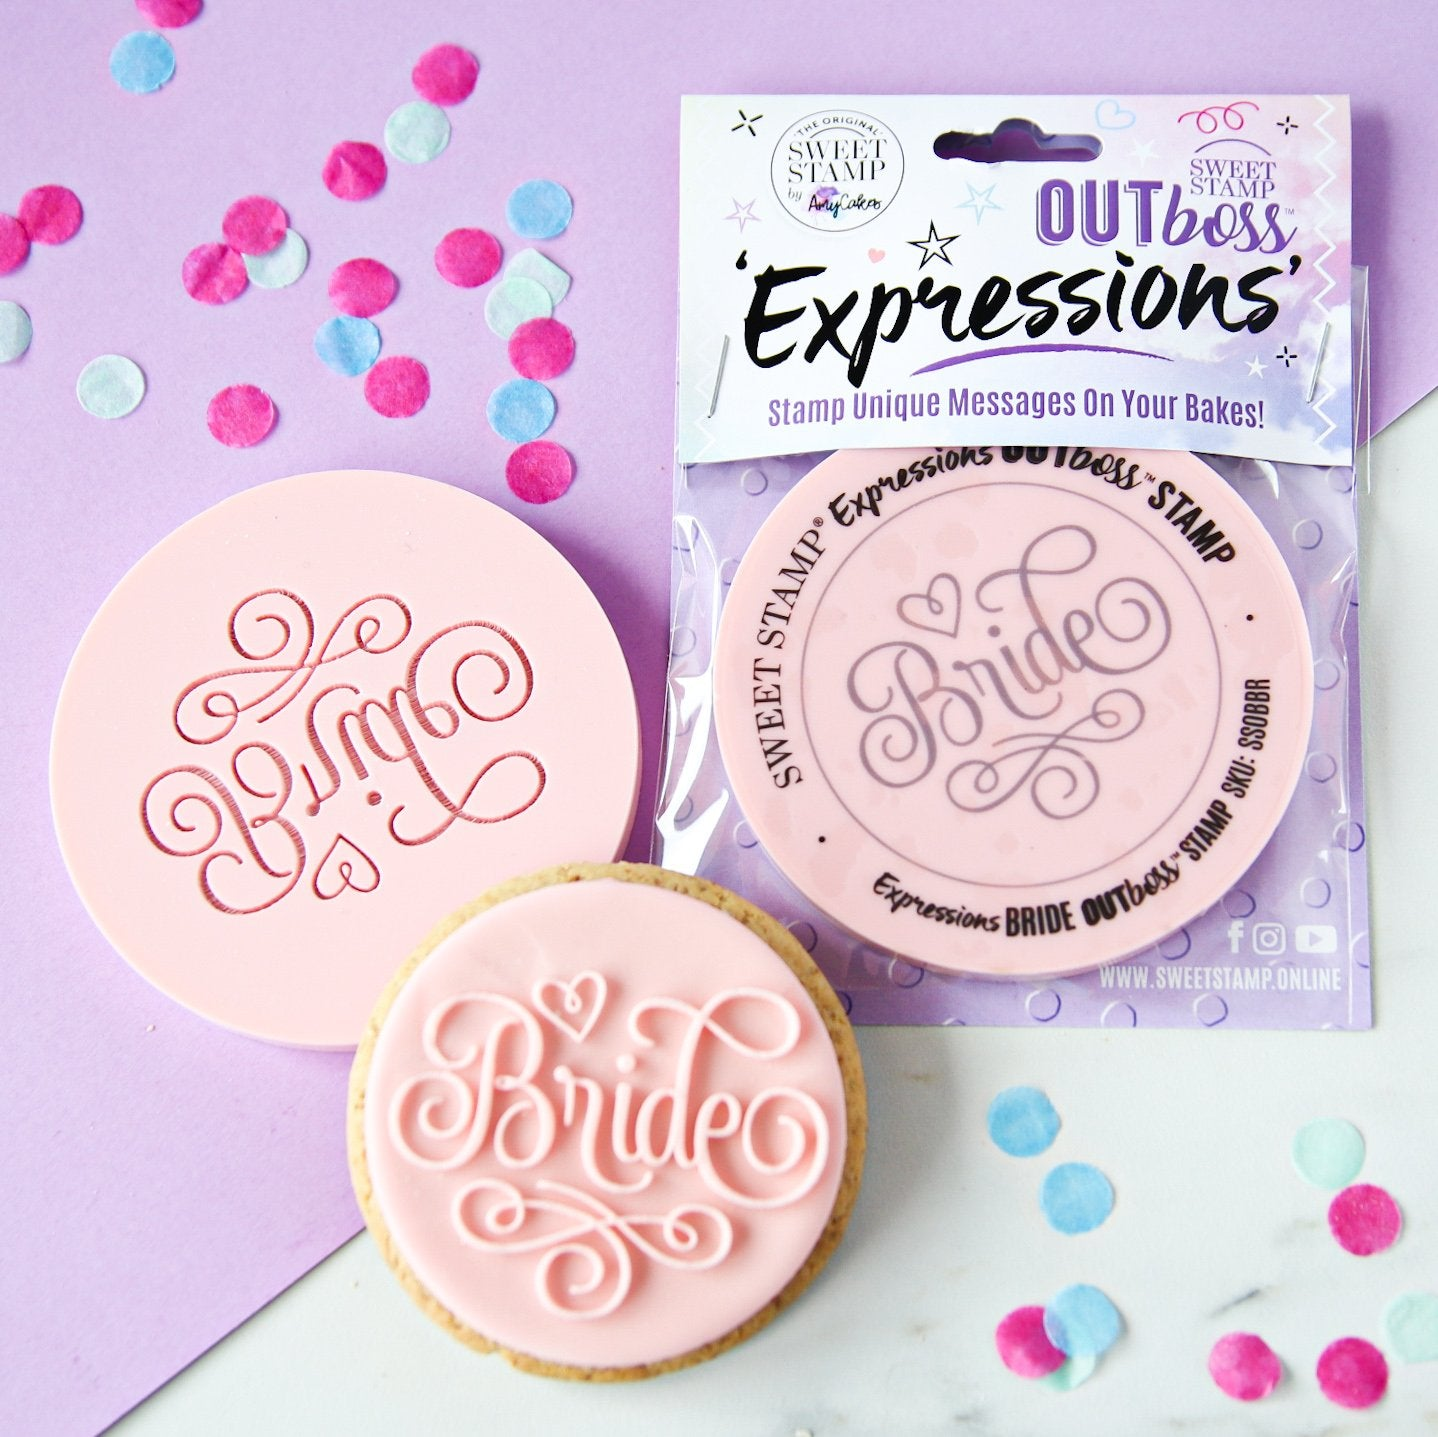 SWEET STAMP - OUTboss Expressions - Bride